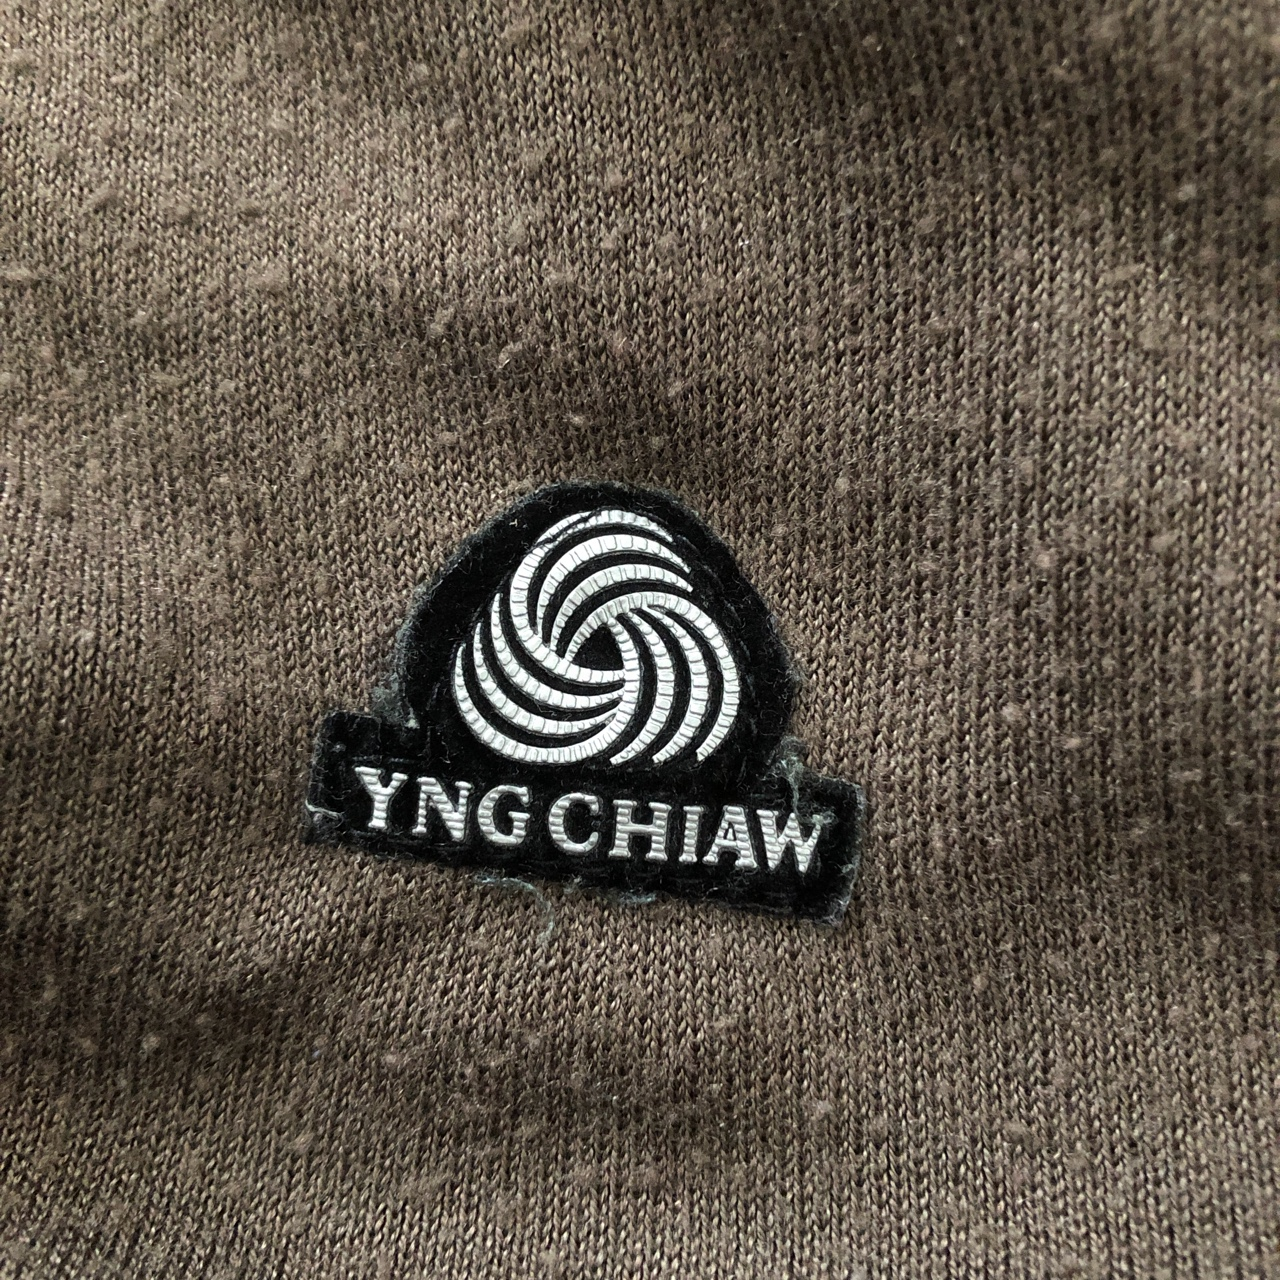 YungChia brown wool knit sweater vest. super trendy and